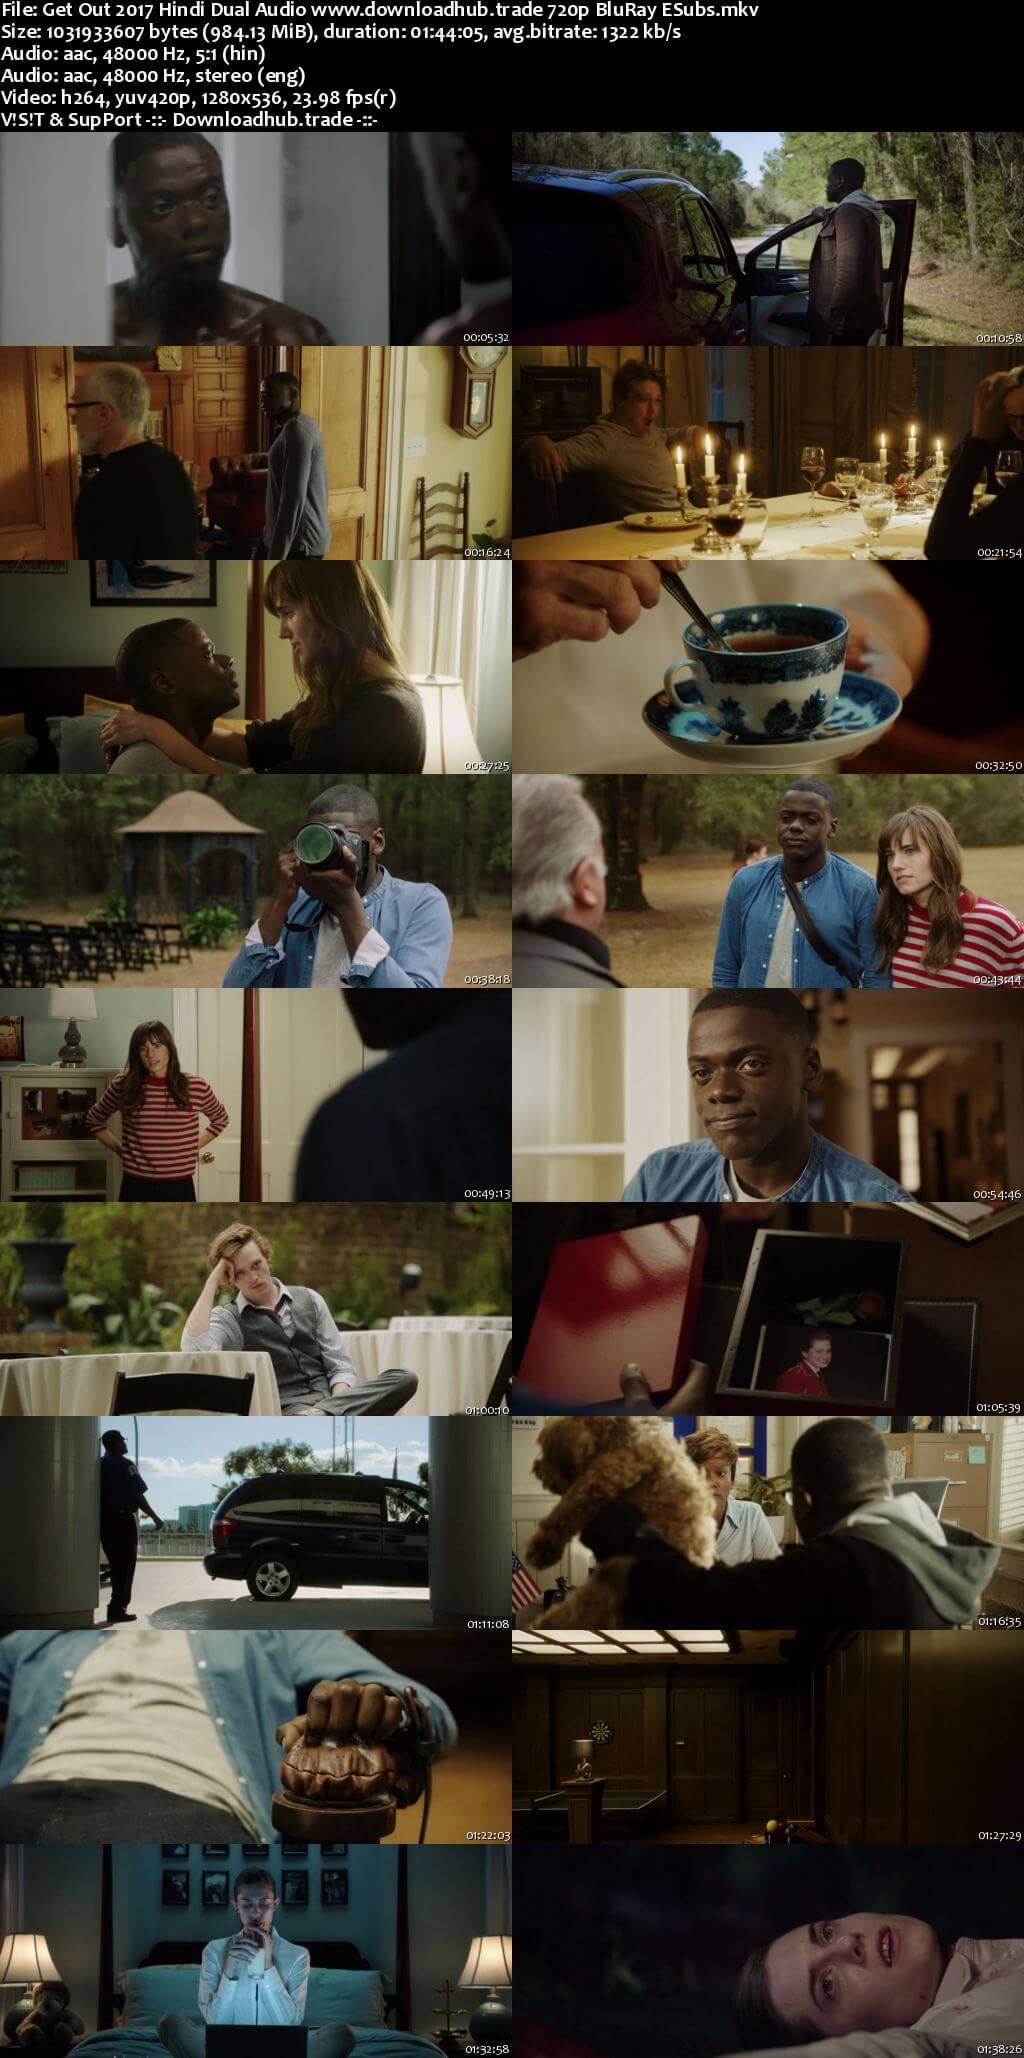 Get Out 2017 Hindi Dual Audio 720p BluRay ESubs